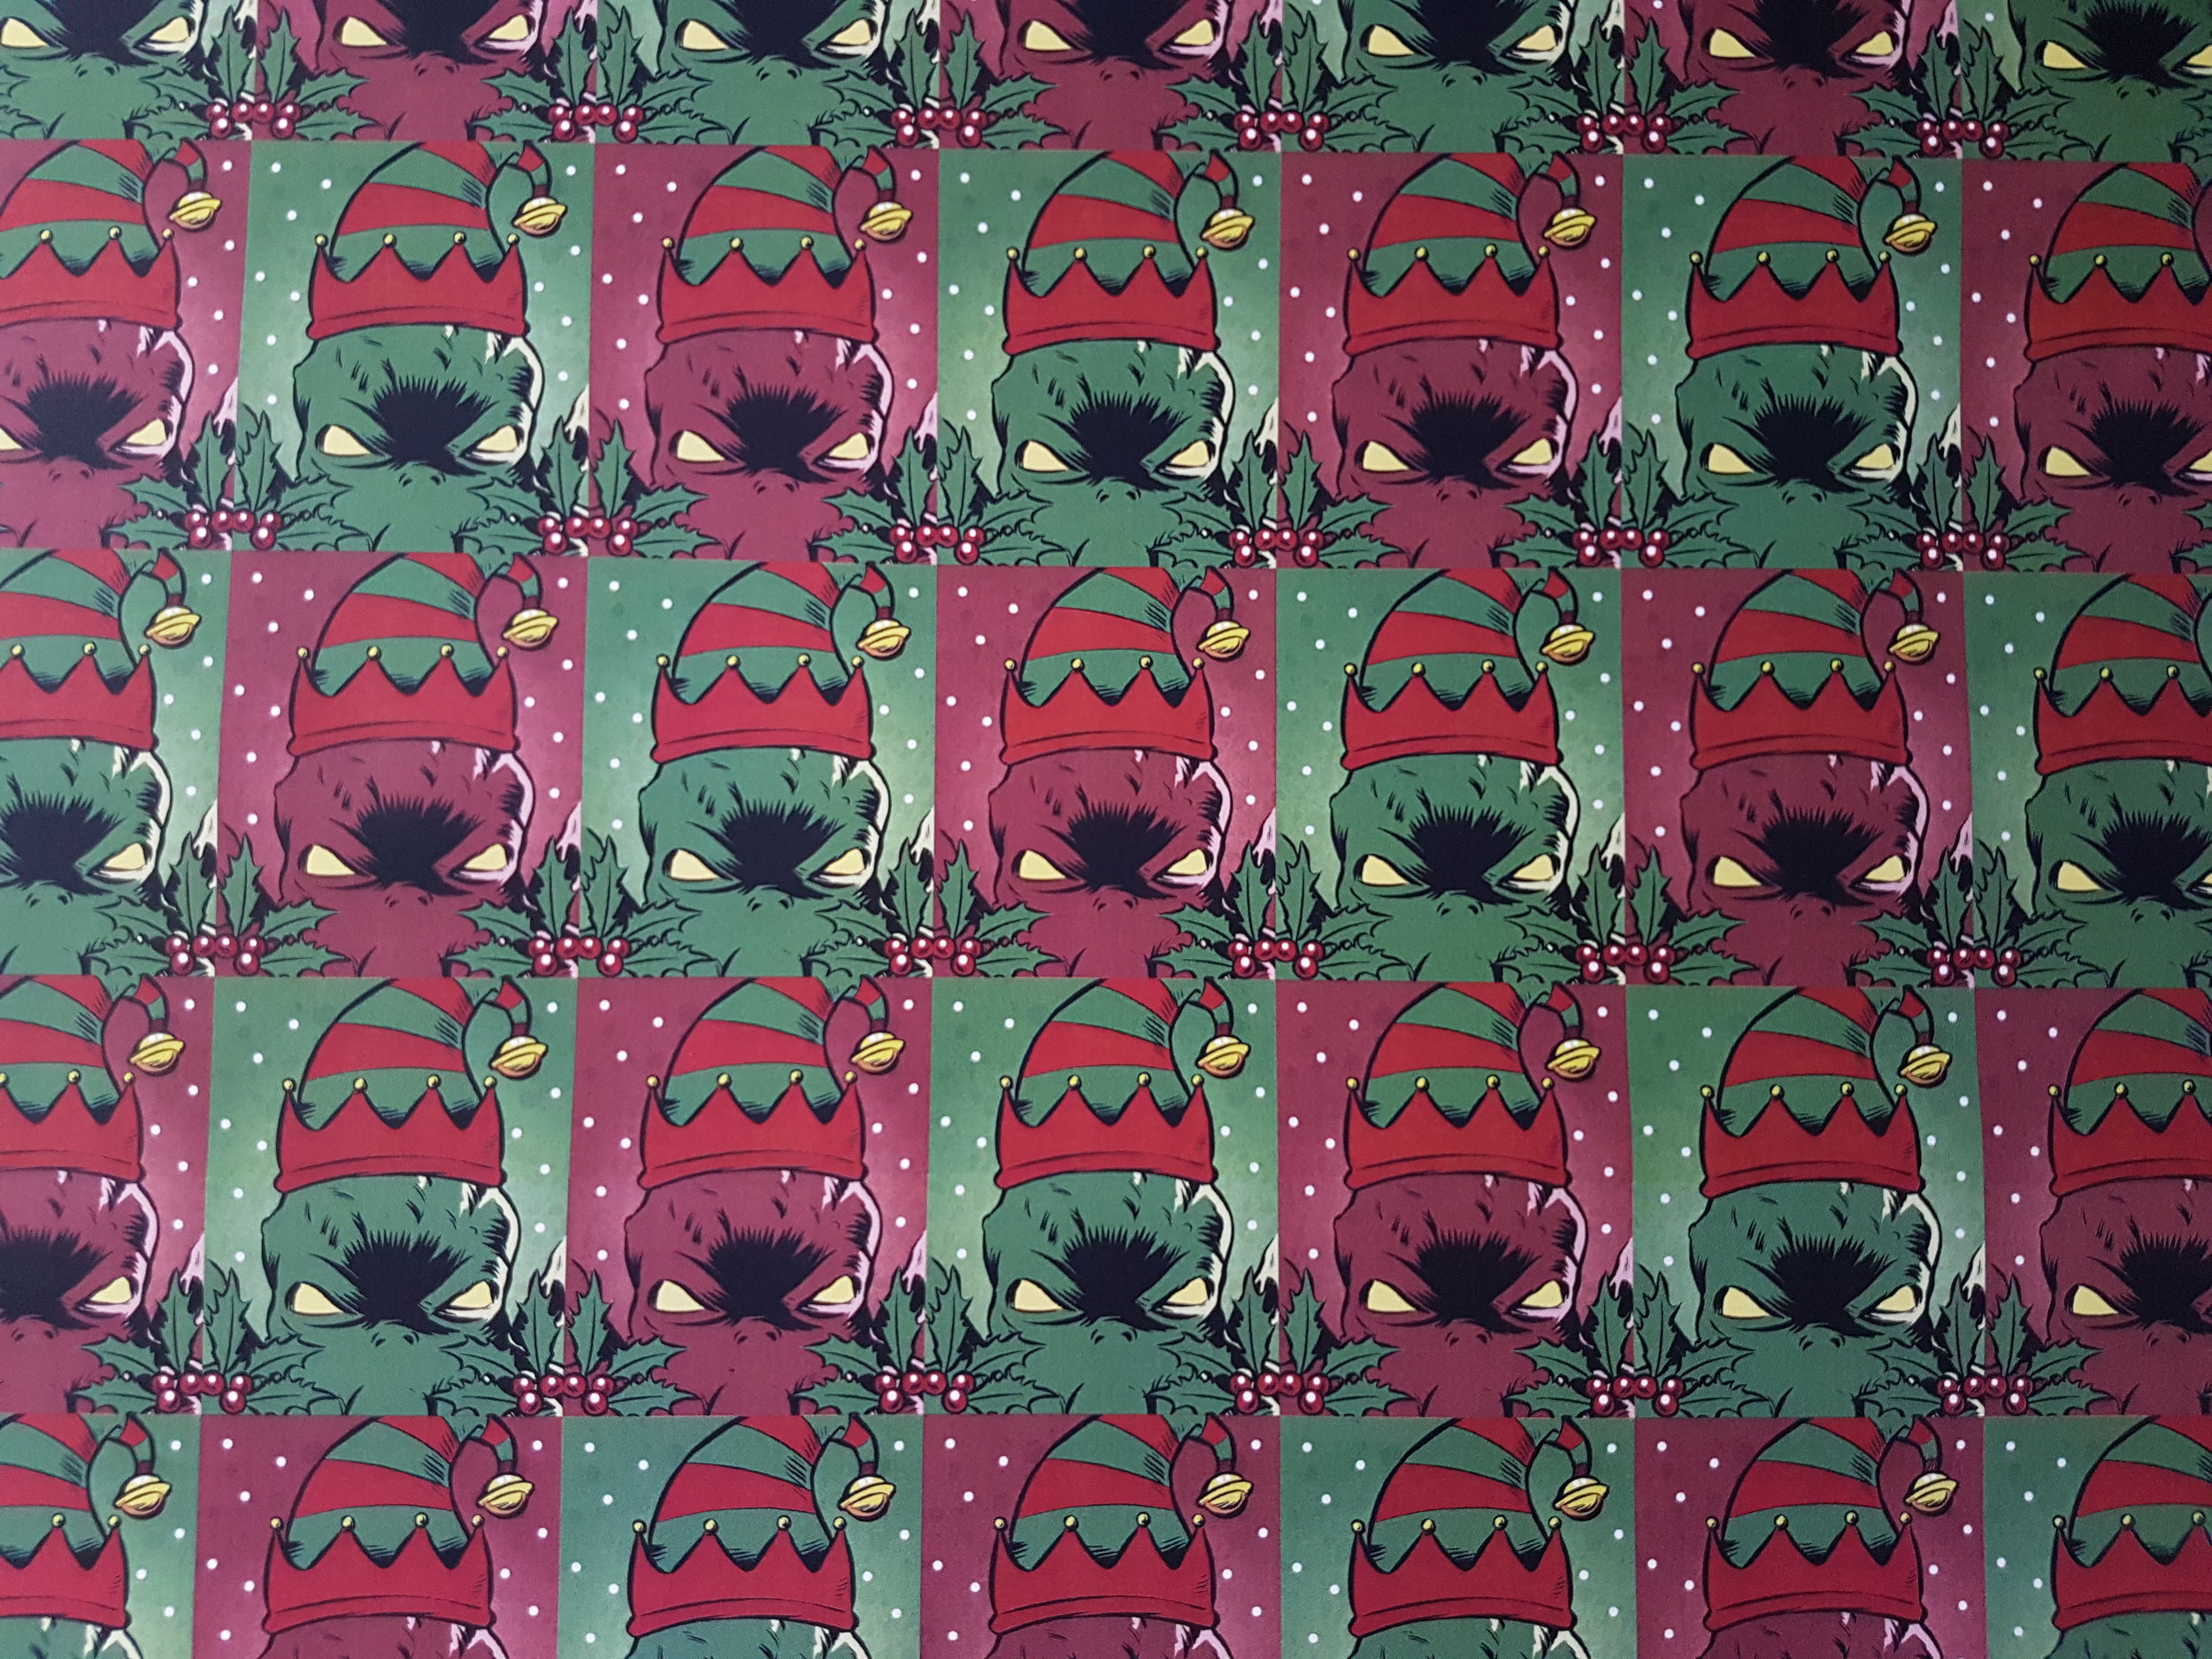 Cthulhu Festive Wrapping Paper